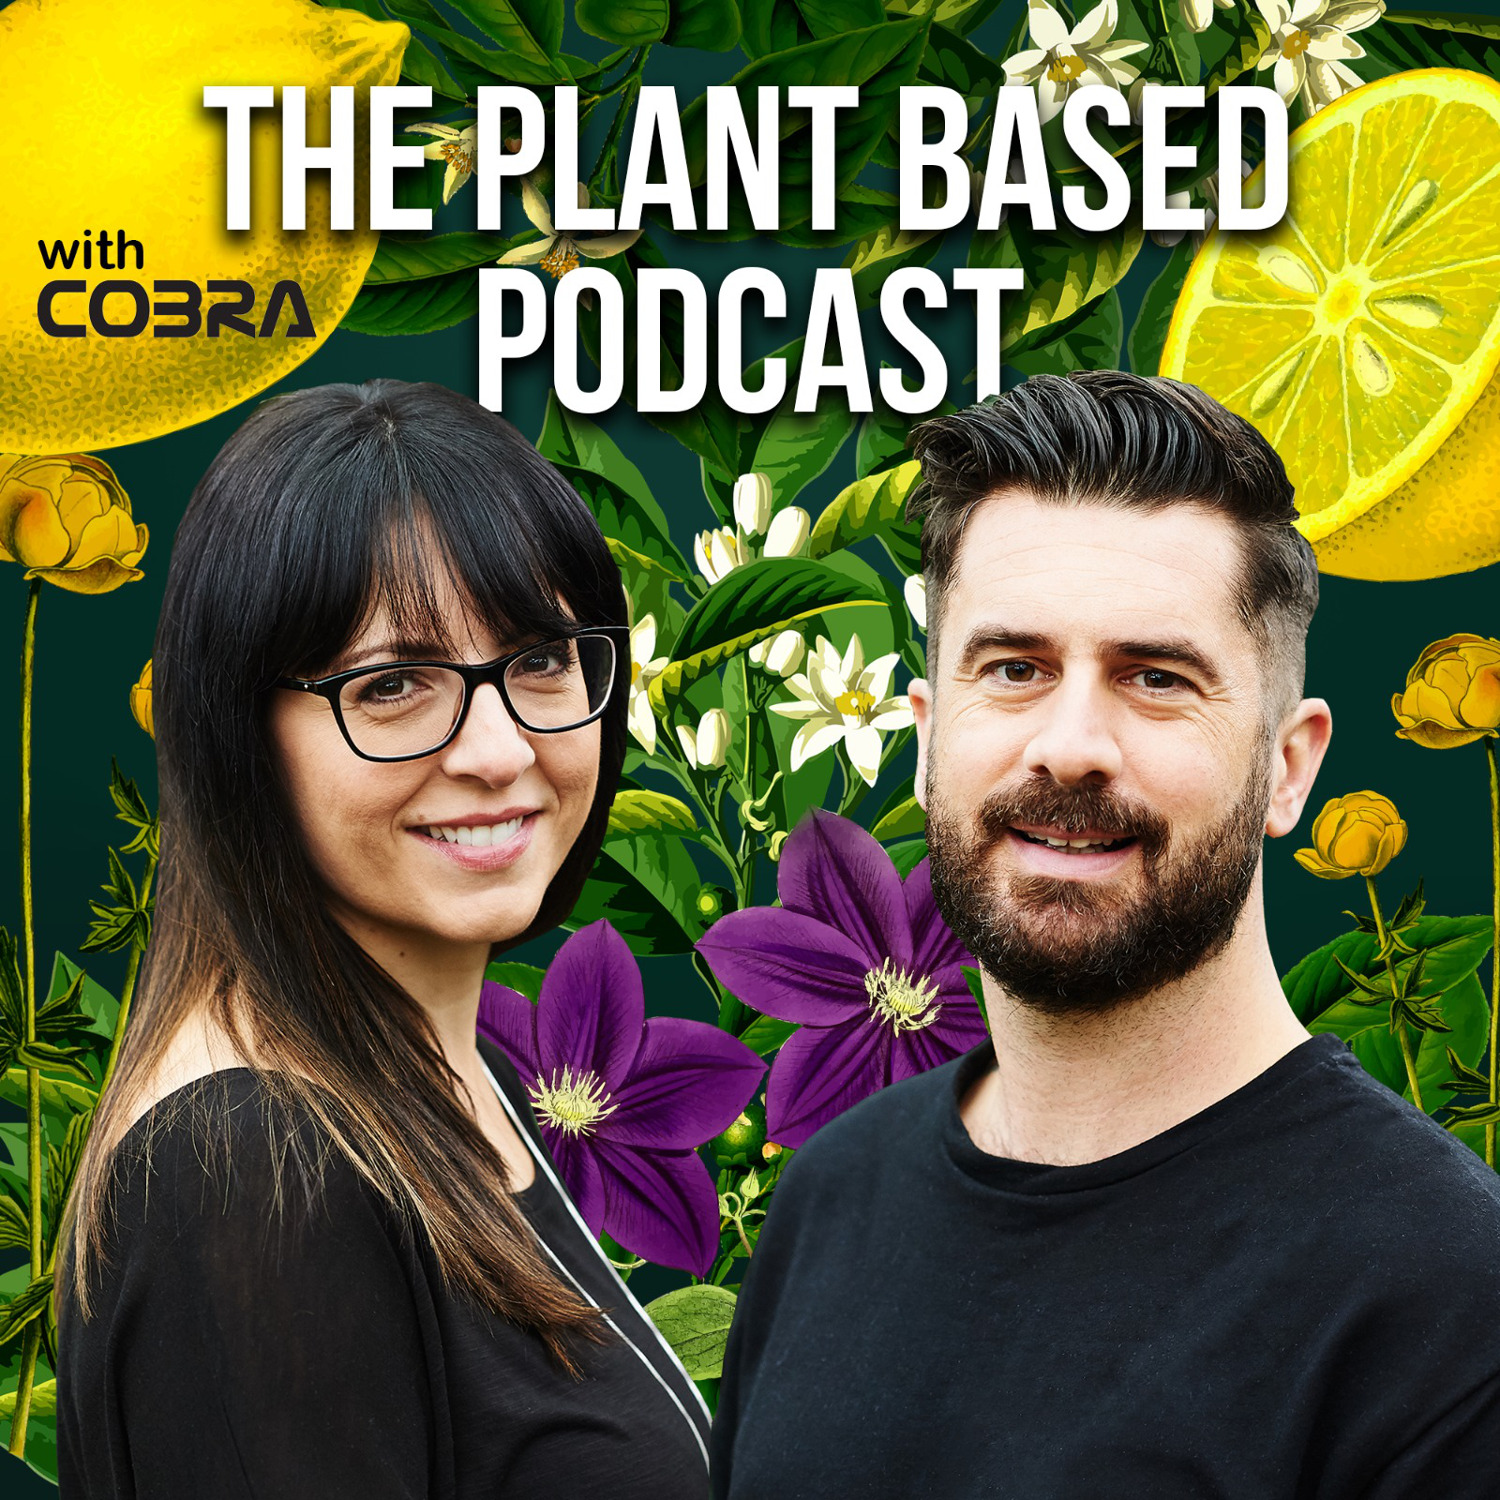 The Plant Based Podcast S4 Inbetweeny - For the love of lawns!